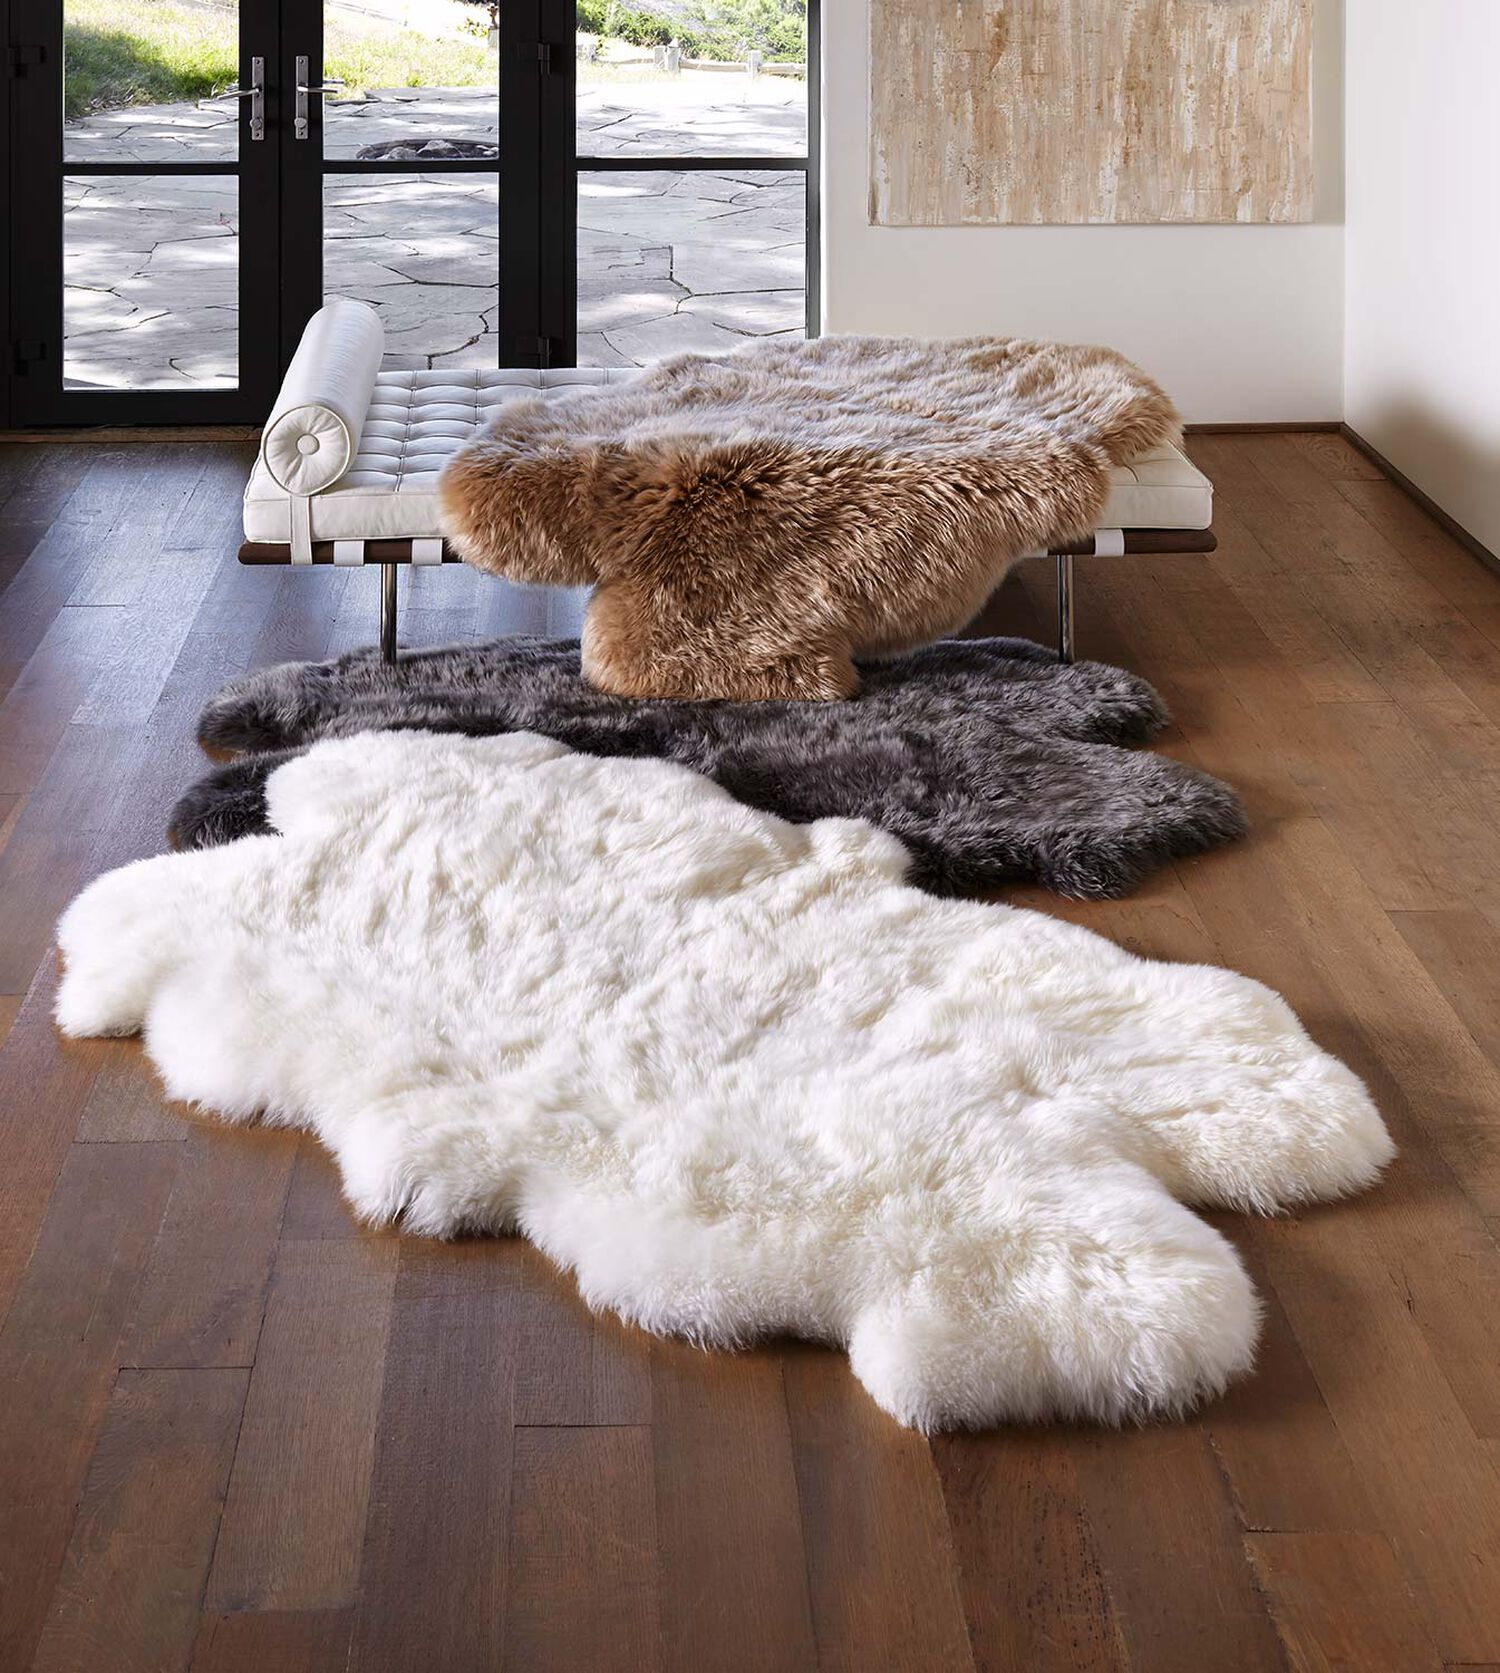 Ugg 174 Sheepskin Area Rug Quarto Free Shipping On Ugg Com